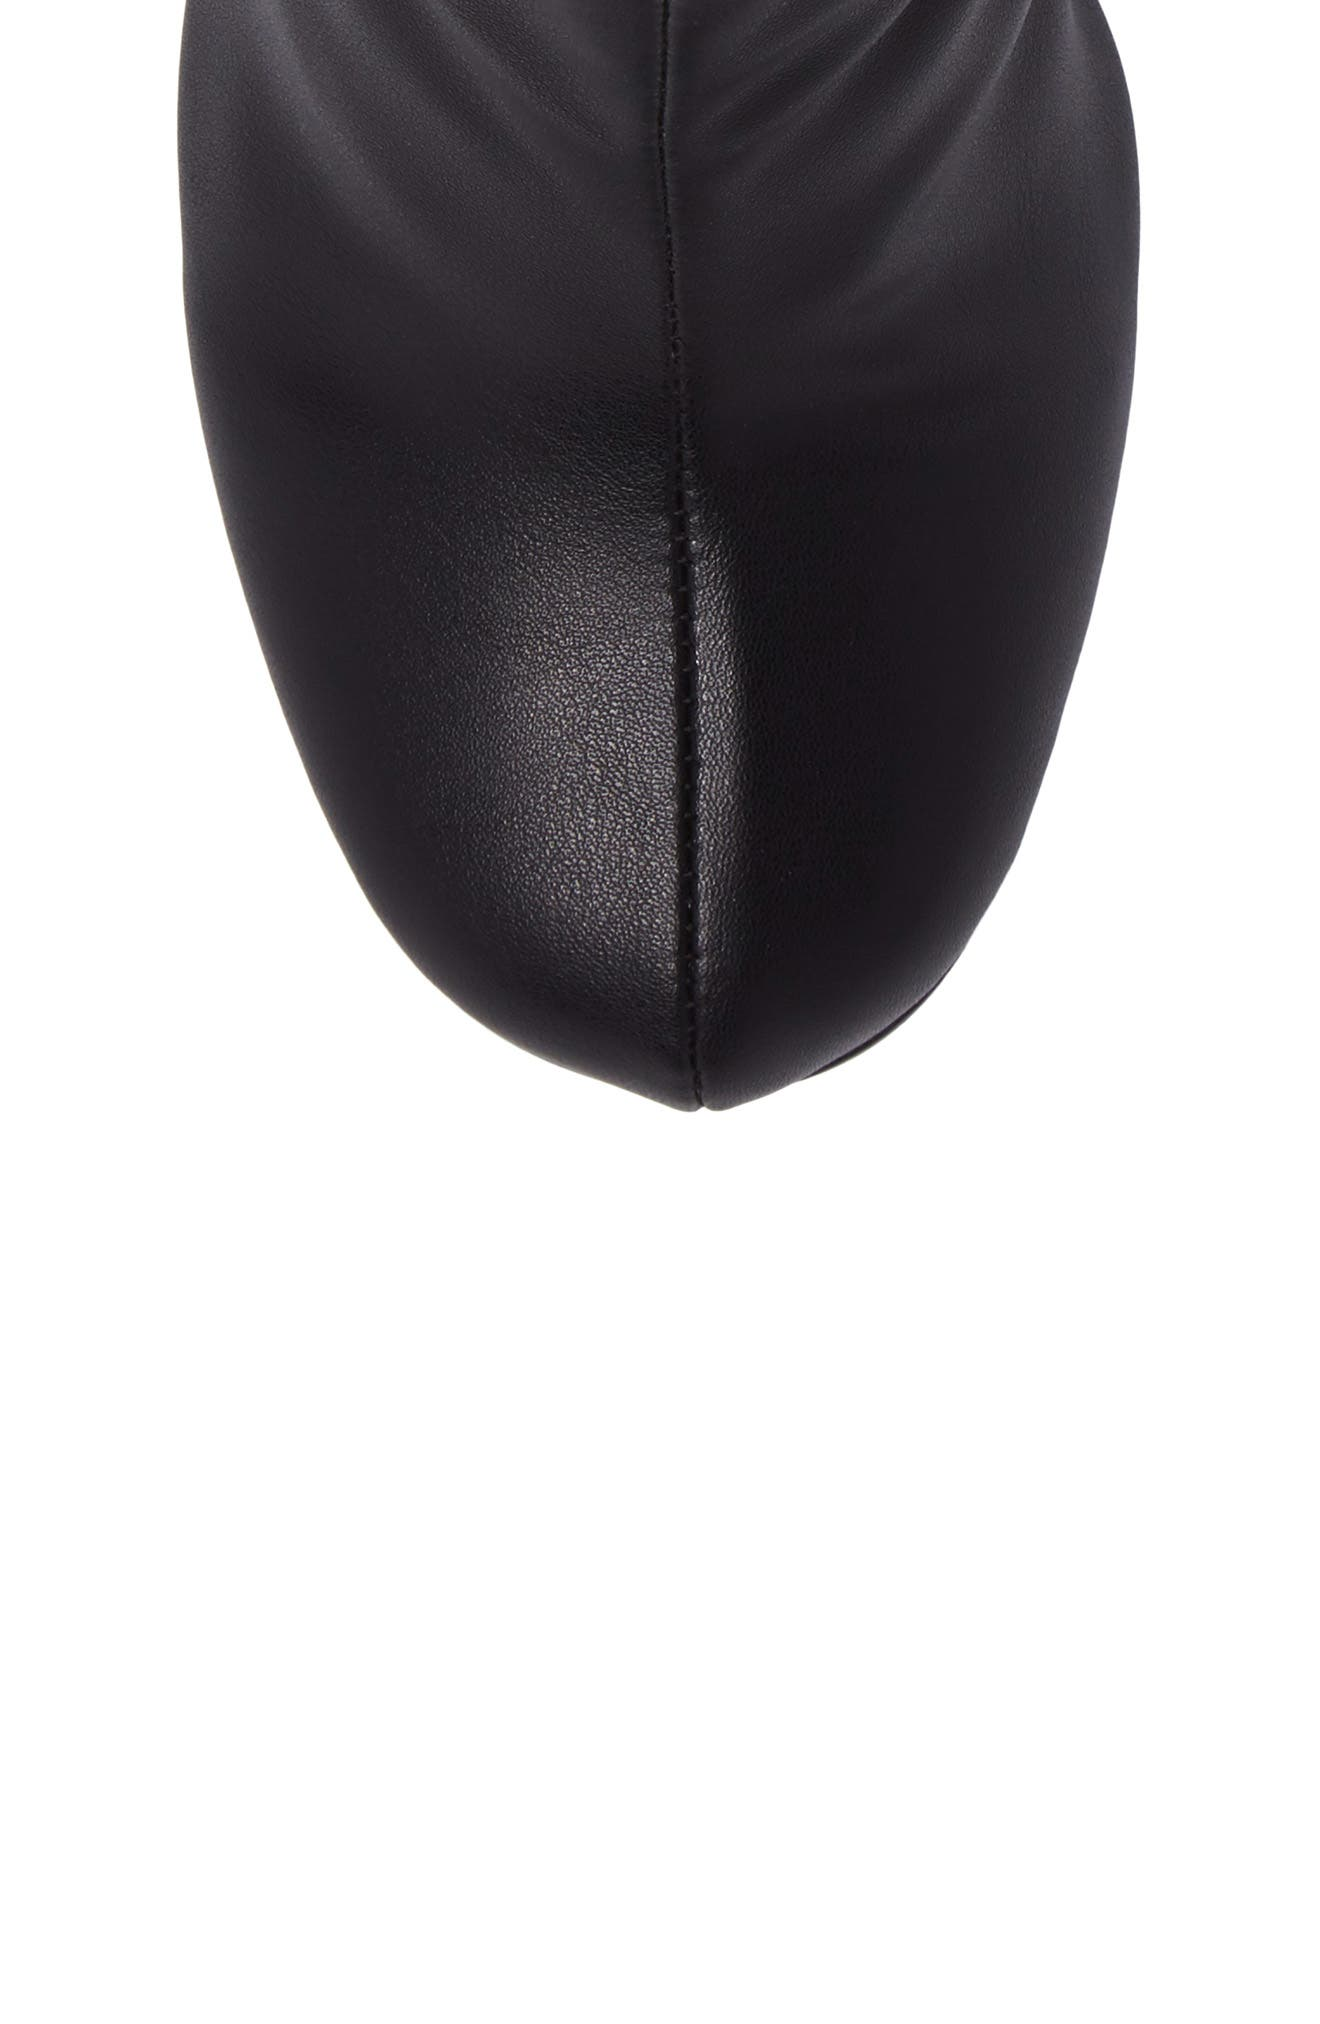 Nyx Stretch Bootie,                             Alternate thumbnail 5, color,                             Black Nappa Leather